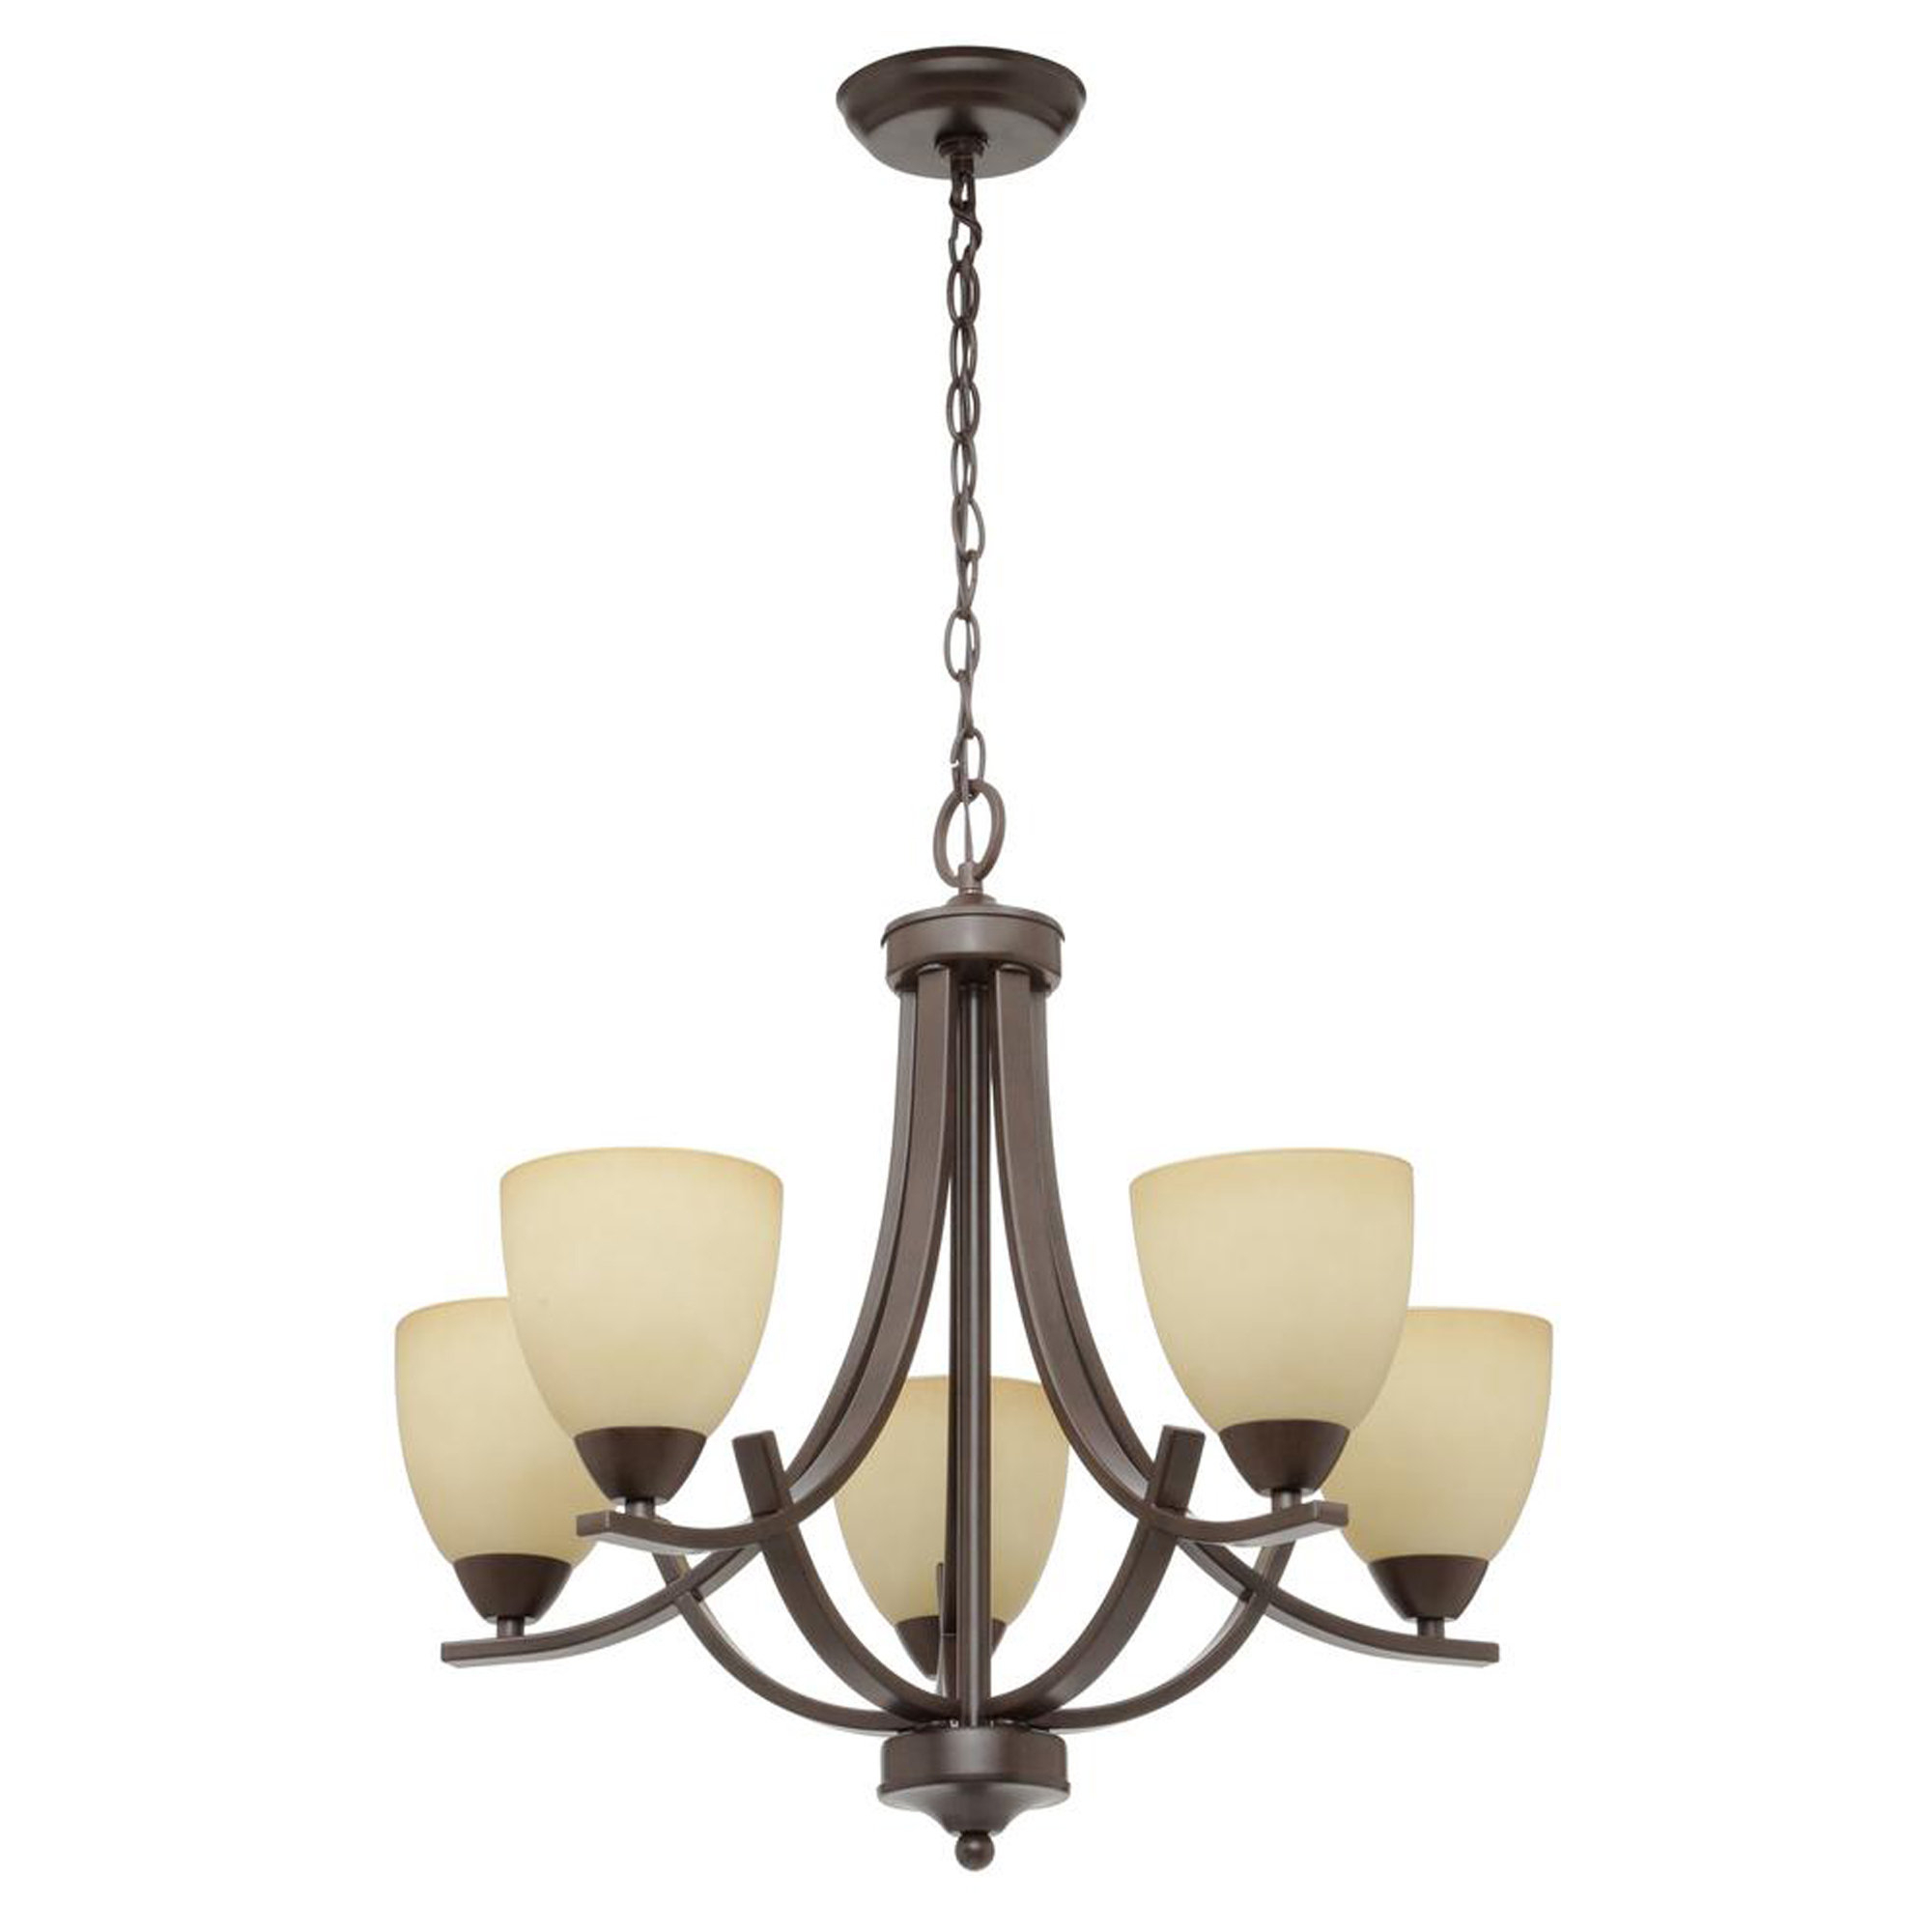 Crofoot 5 Light Shaded Chandeliers For 2020 Crofoot 5 Light Shaded Chandelier (Gallery 1 of 20)